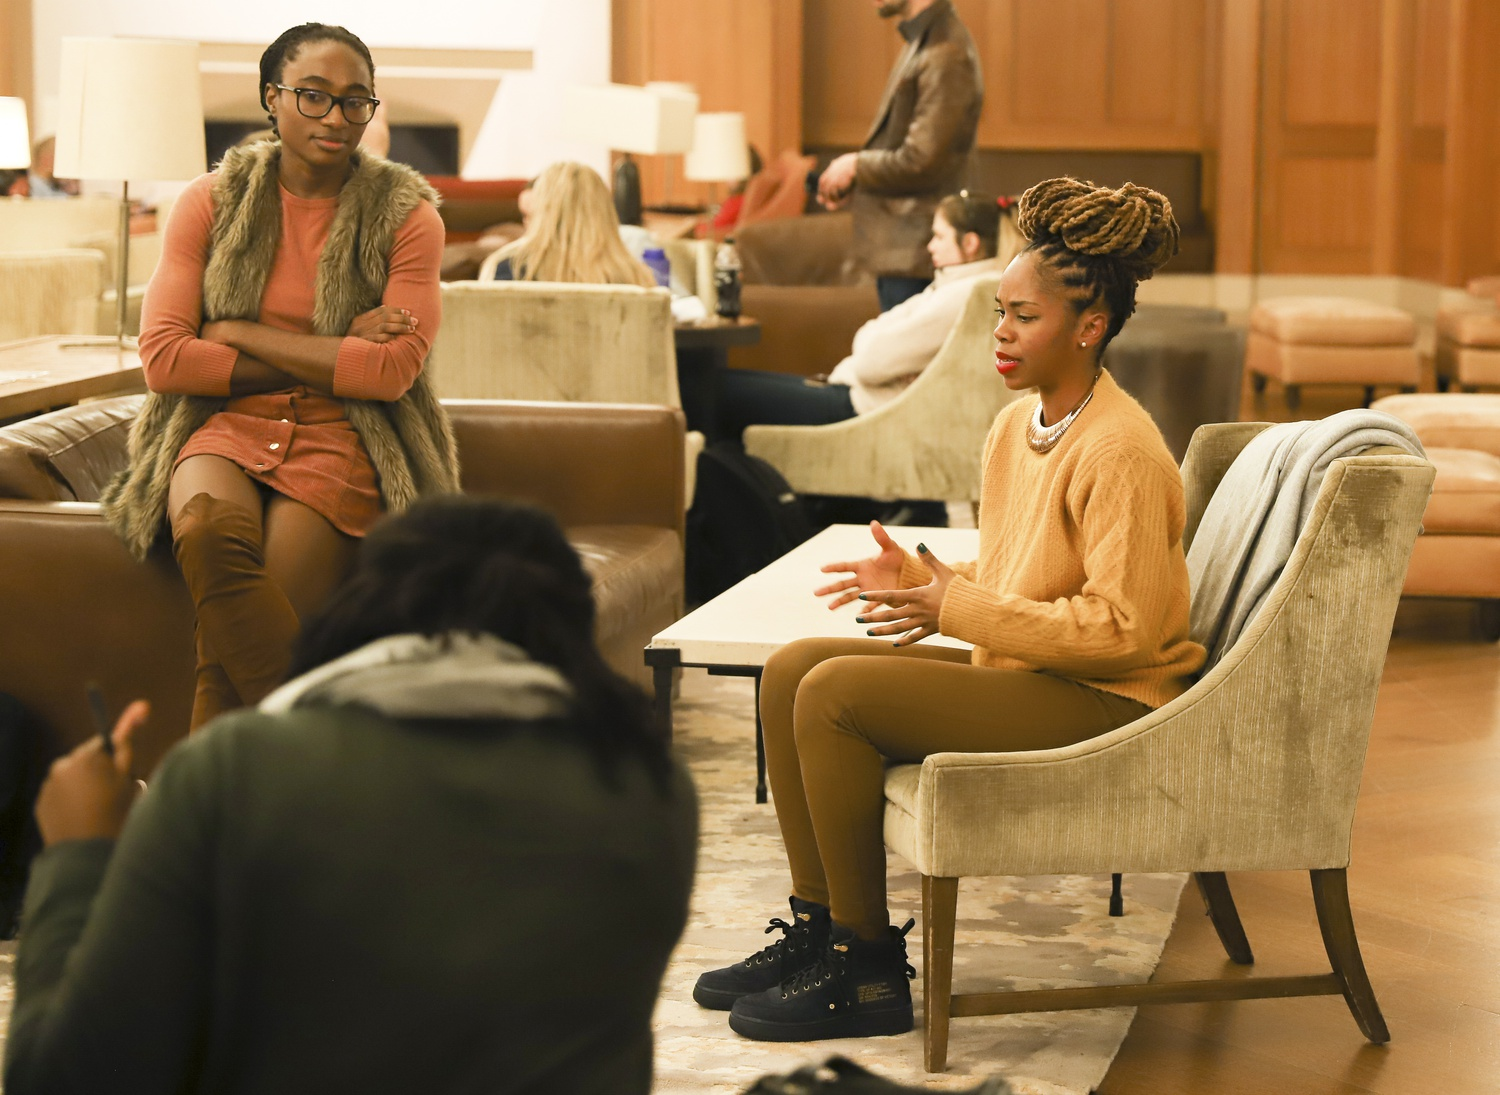 Law School alum Derecka Purnell and organizers for the Harvard Prison Divestment Campaign discuss prison abolition at an event Thursday evening.